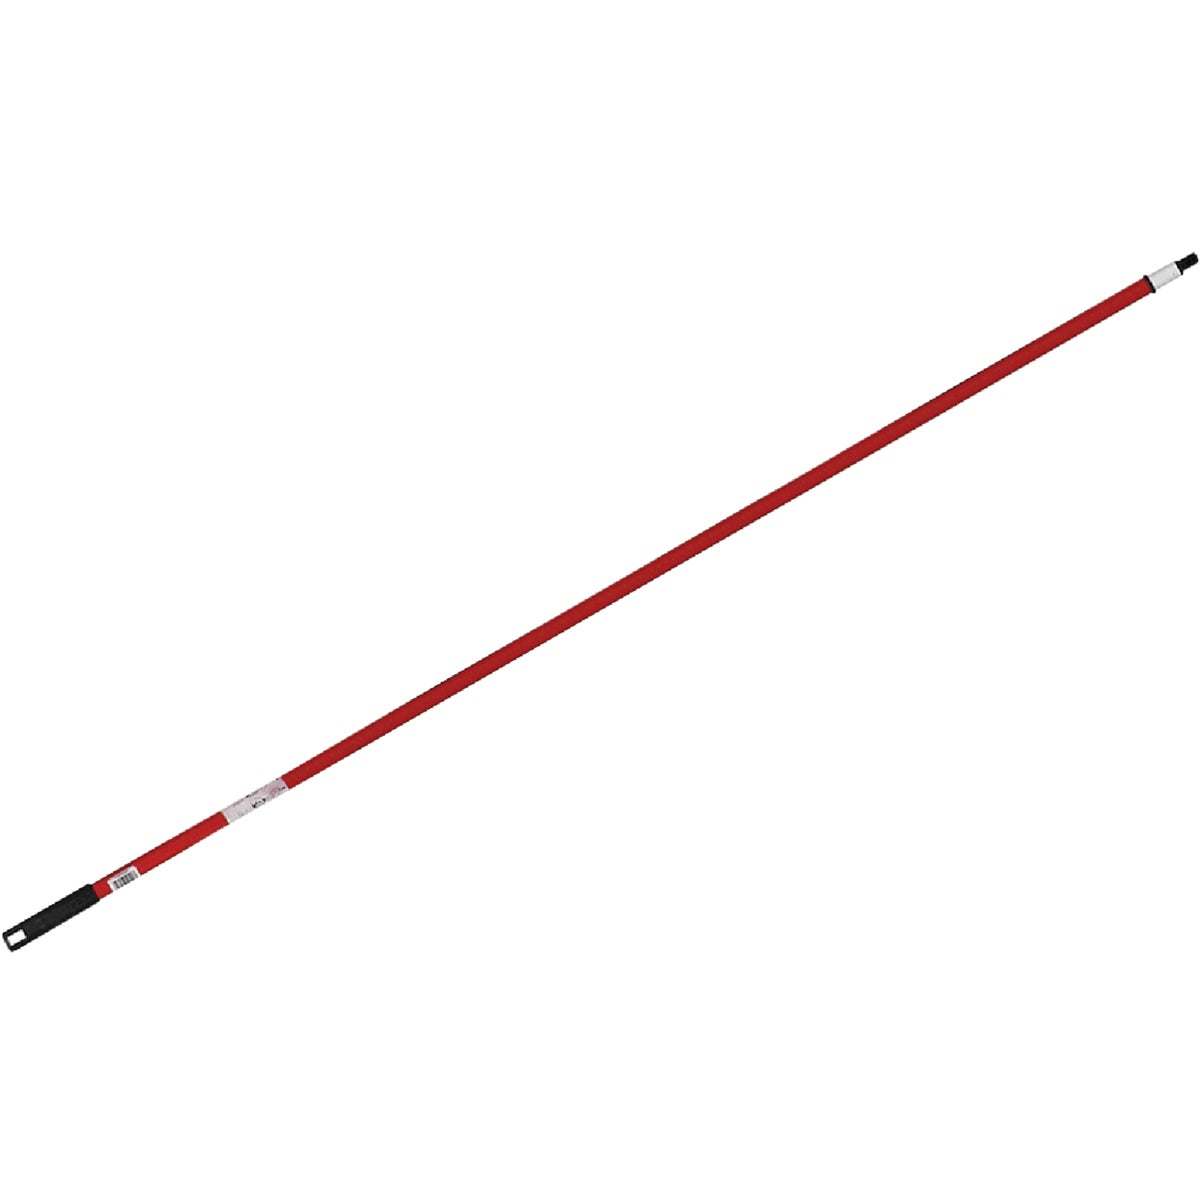 10' TELESCOPIC HANDLE